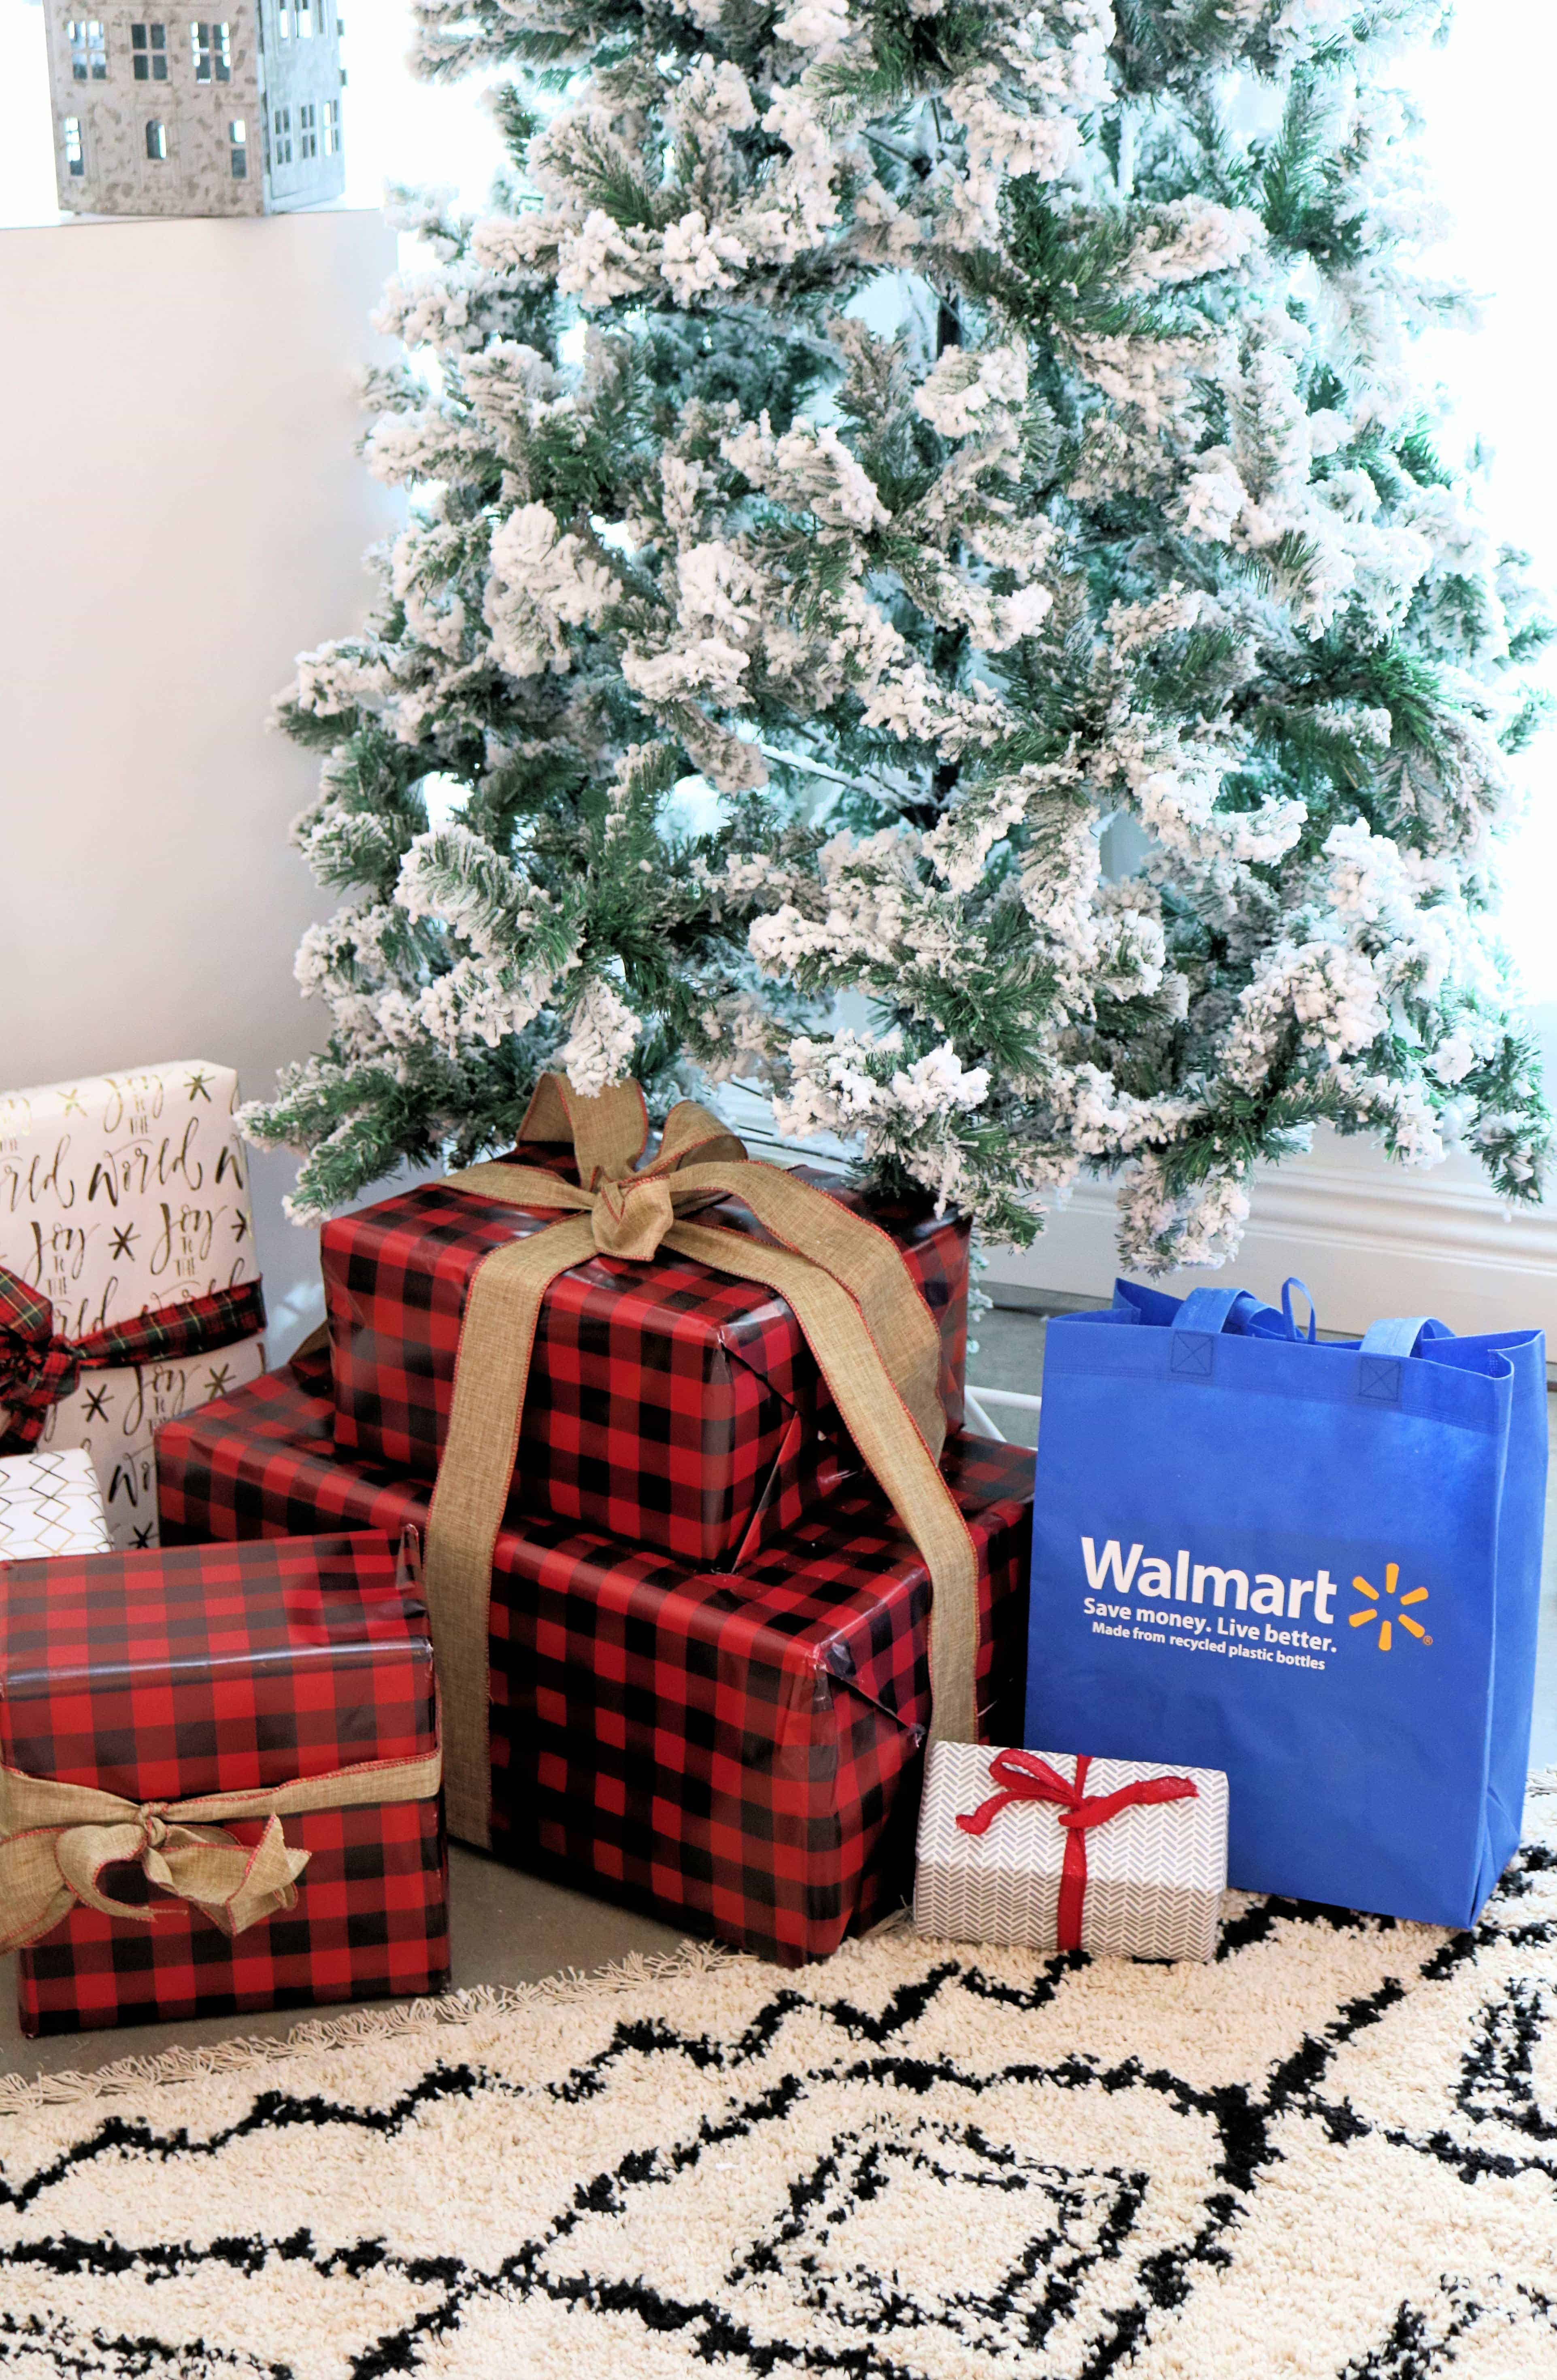 25 Hottest Walmart Black Friday Deals For The Whole Family - Kindly ...